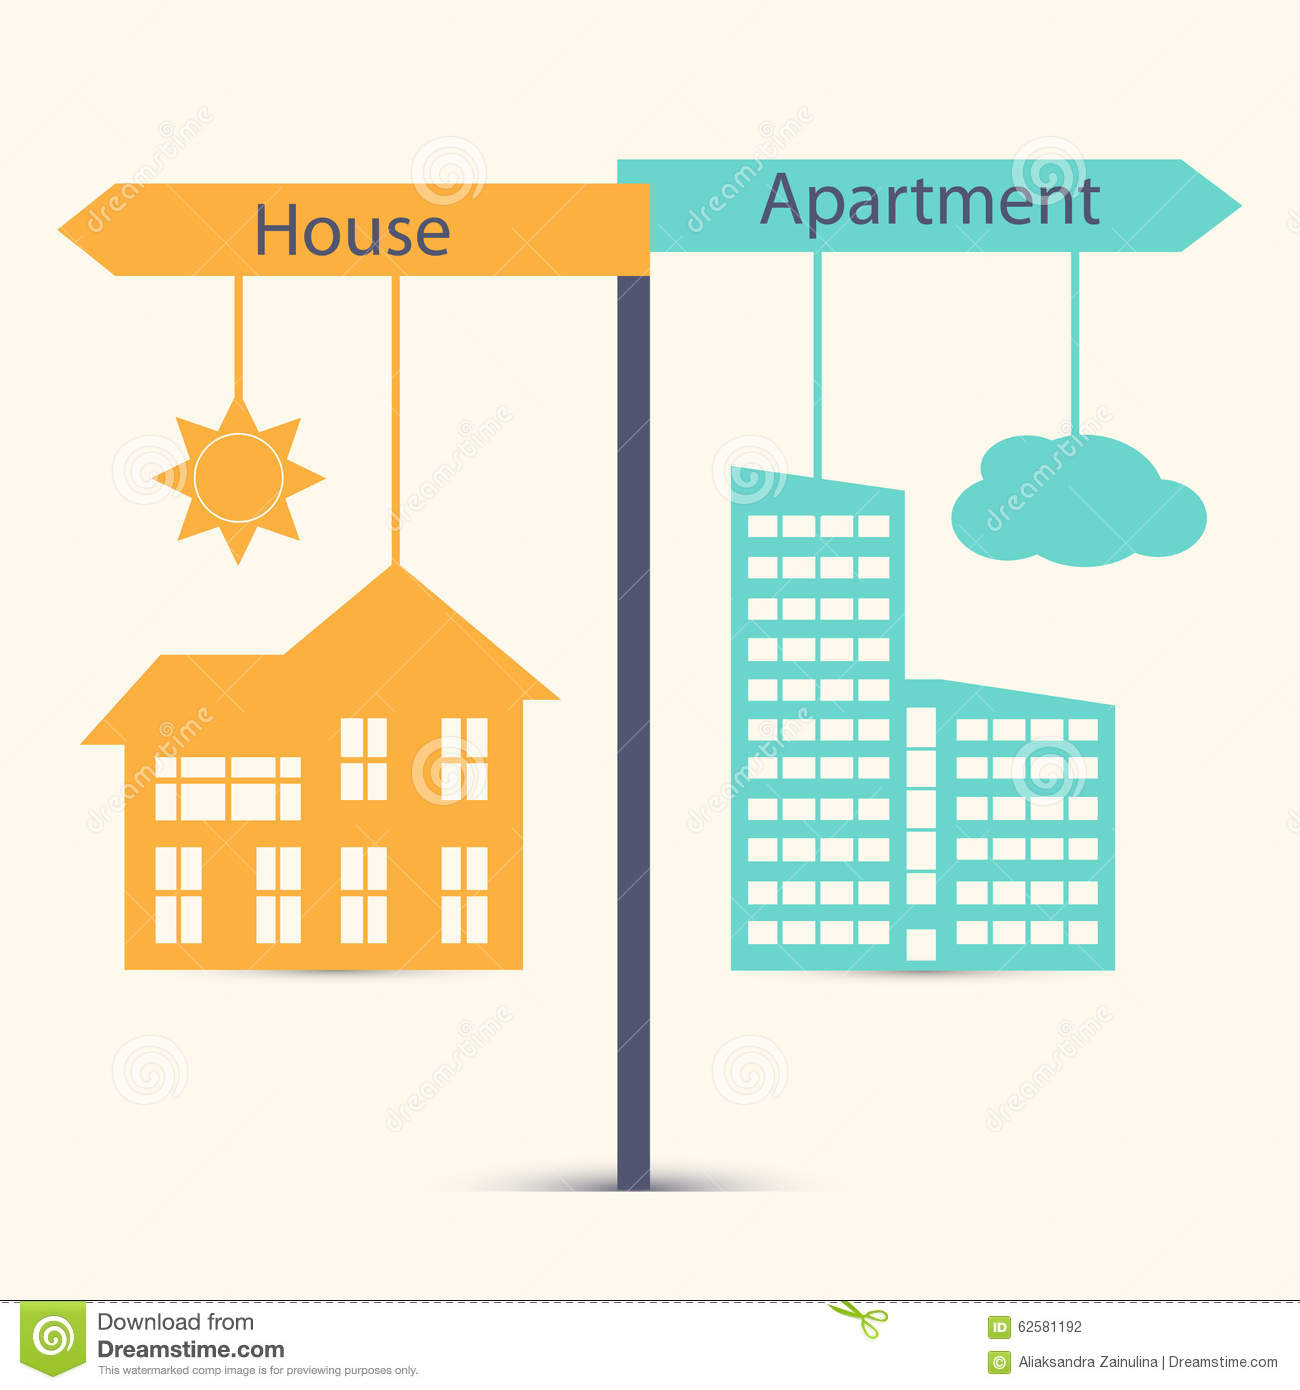 difference between house and apartment